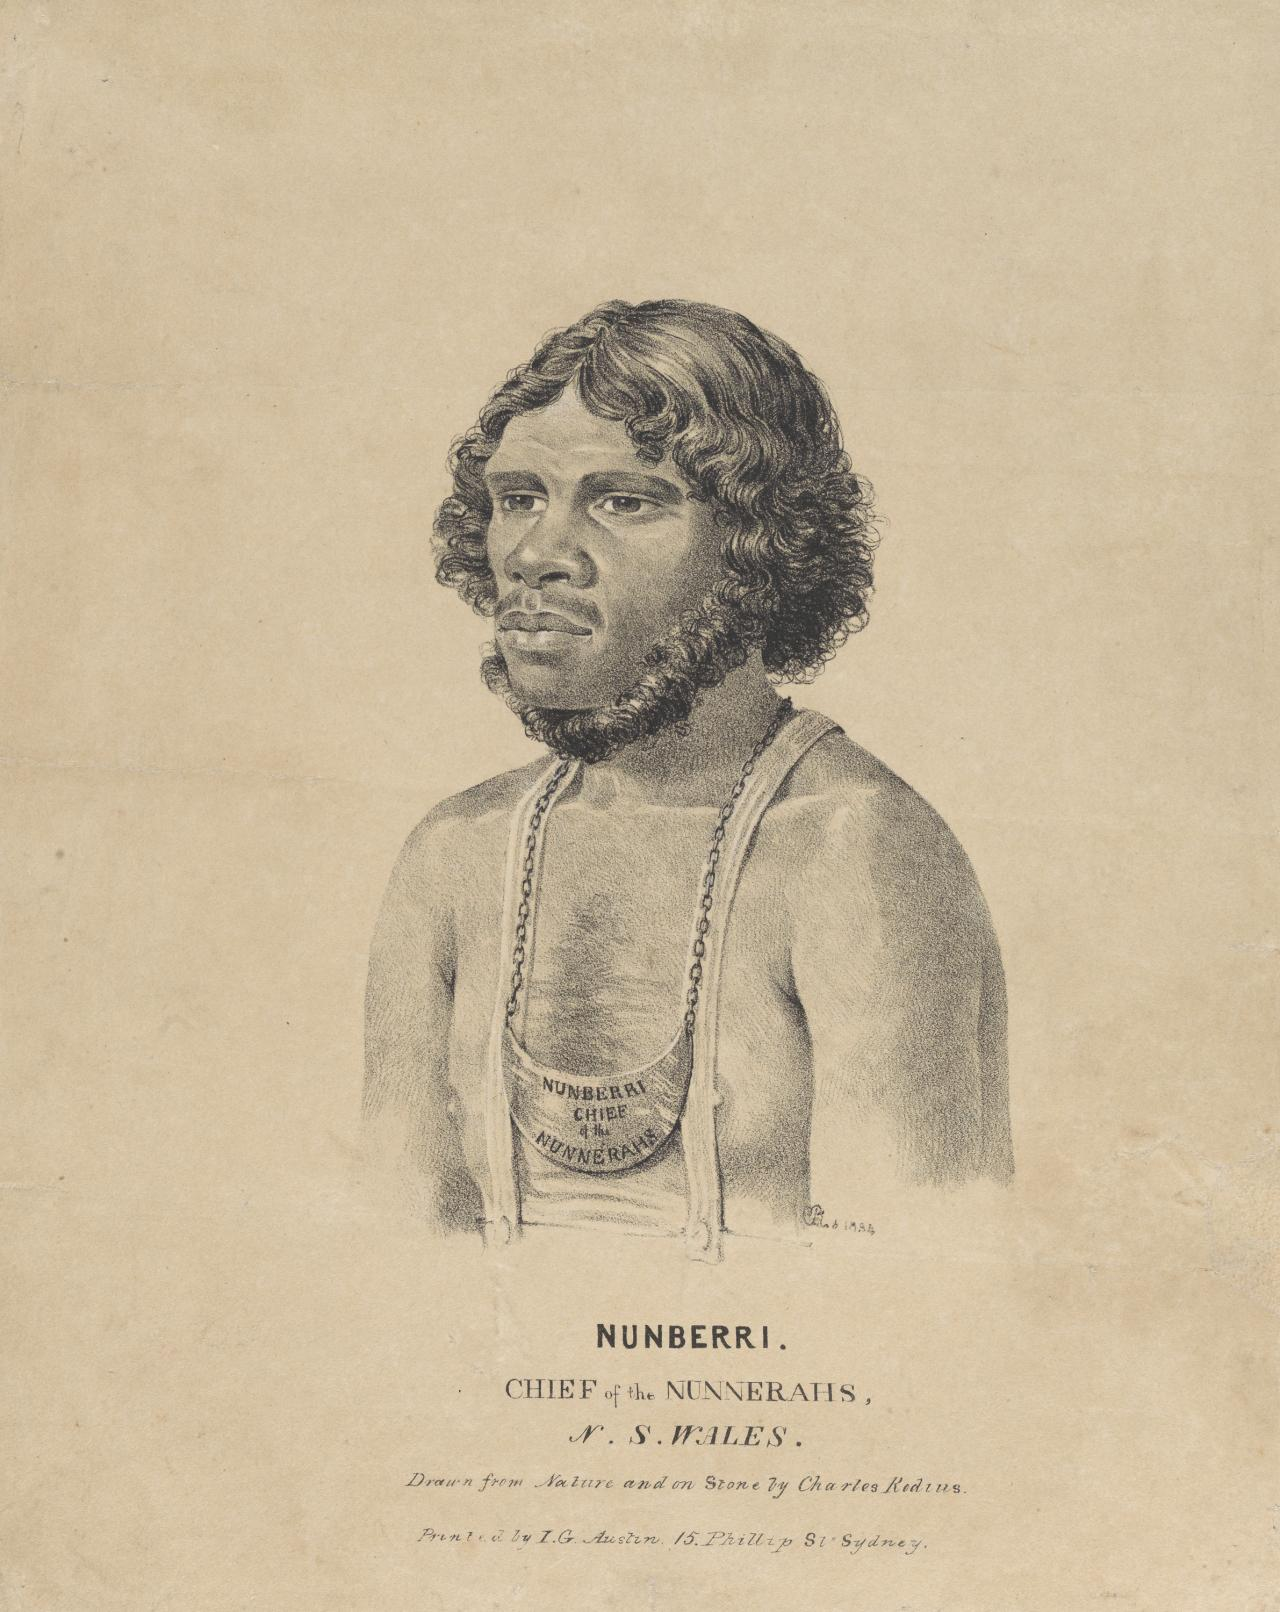 Nunberri, Chief of the Nunnerahs, N. S. Wales